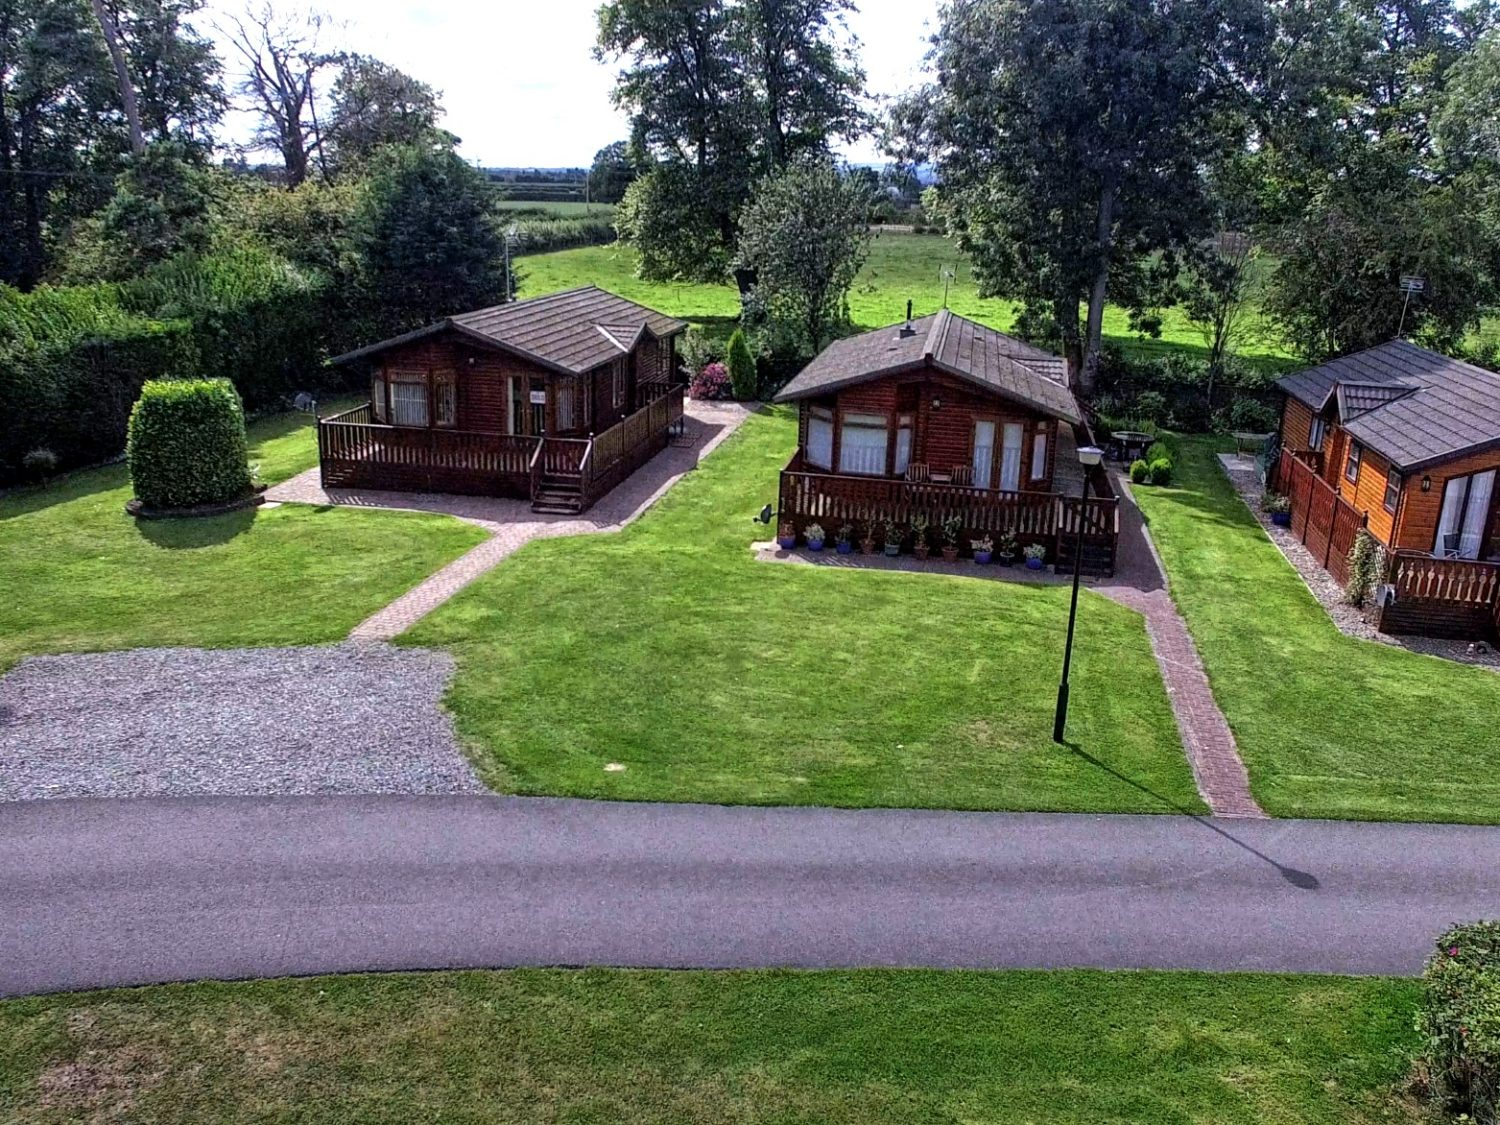 Views above the lodges at Fir Trees Caravan and Lodge Park